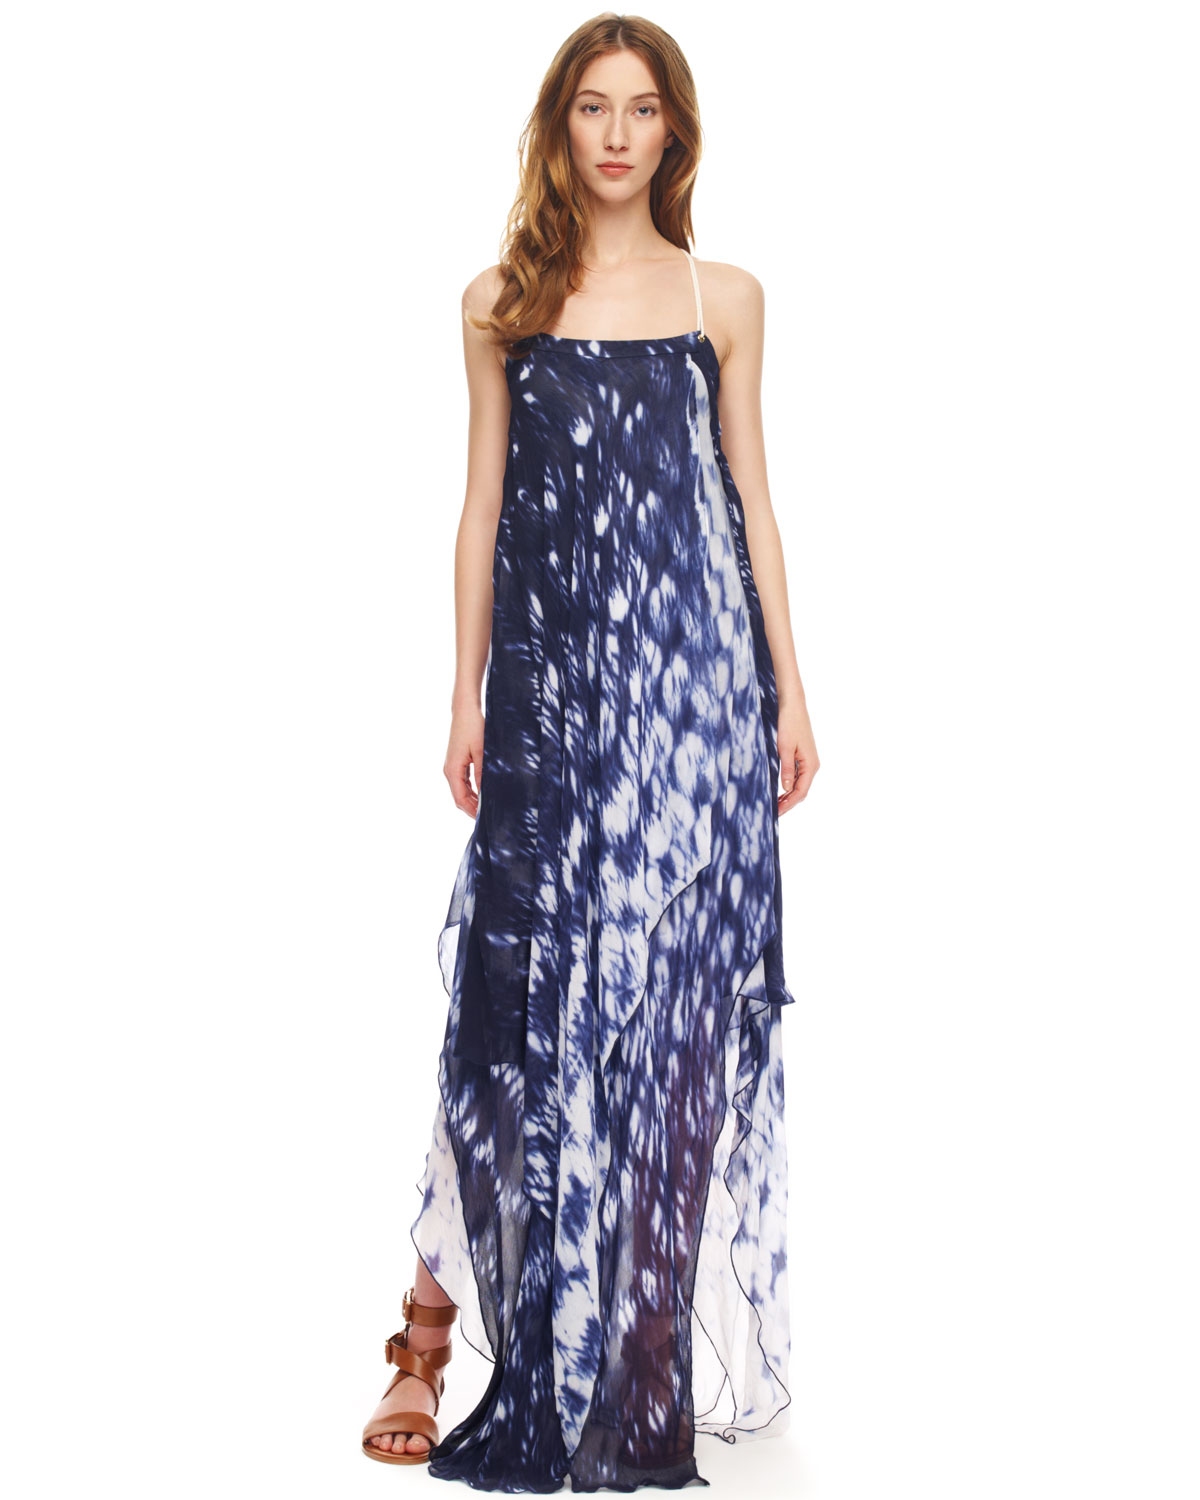 Lyst Michael kors Printed Layered Maxi Dress in White